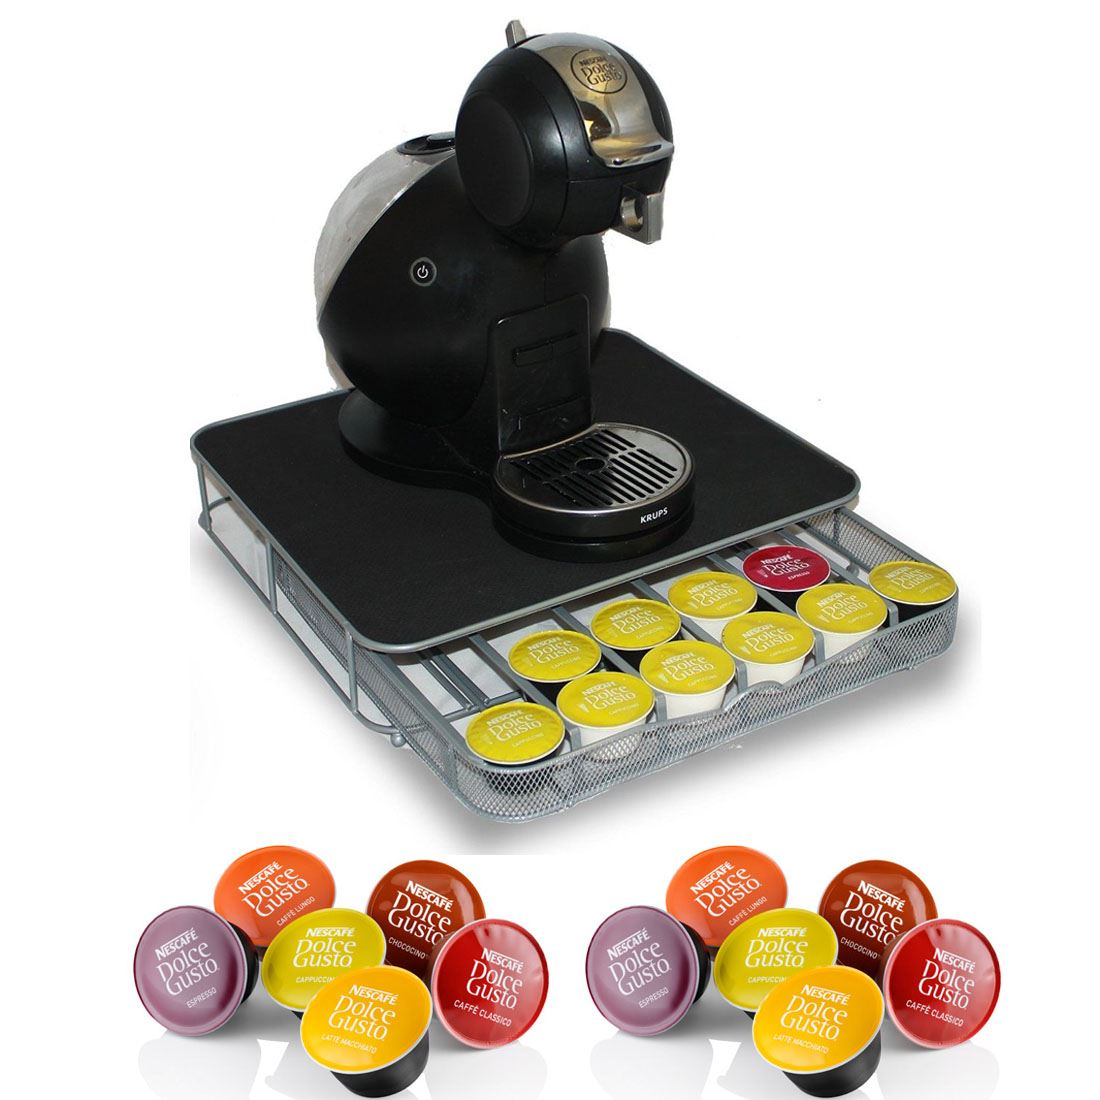 dolce gusto coffee pod stand and drawer storage holds 36 coffee capsules ebay. Black Bedroom Furniture Sets. Home Design Ideas